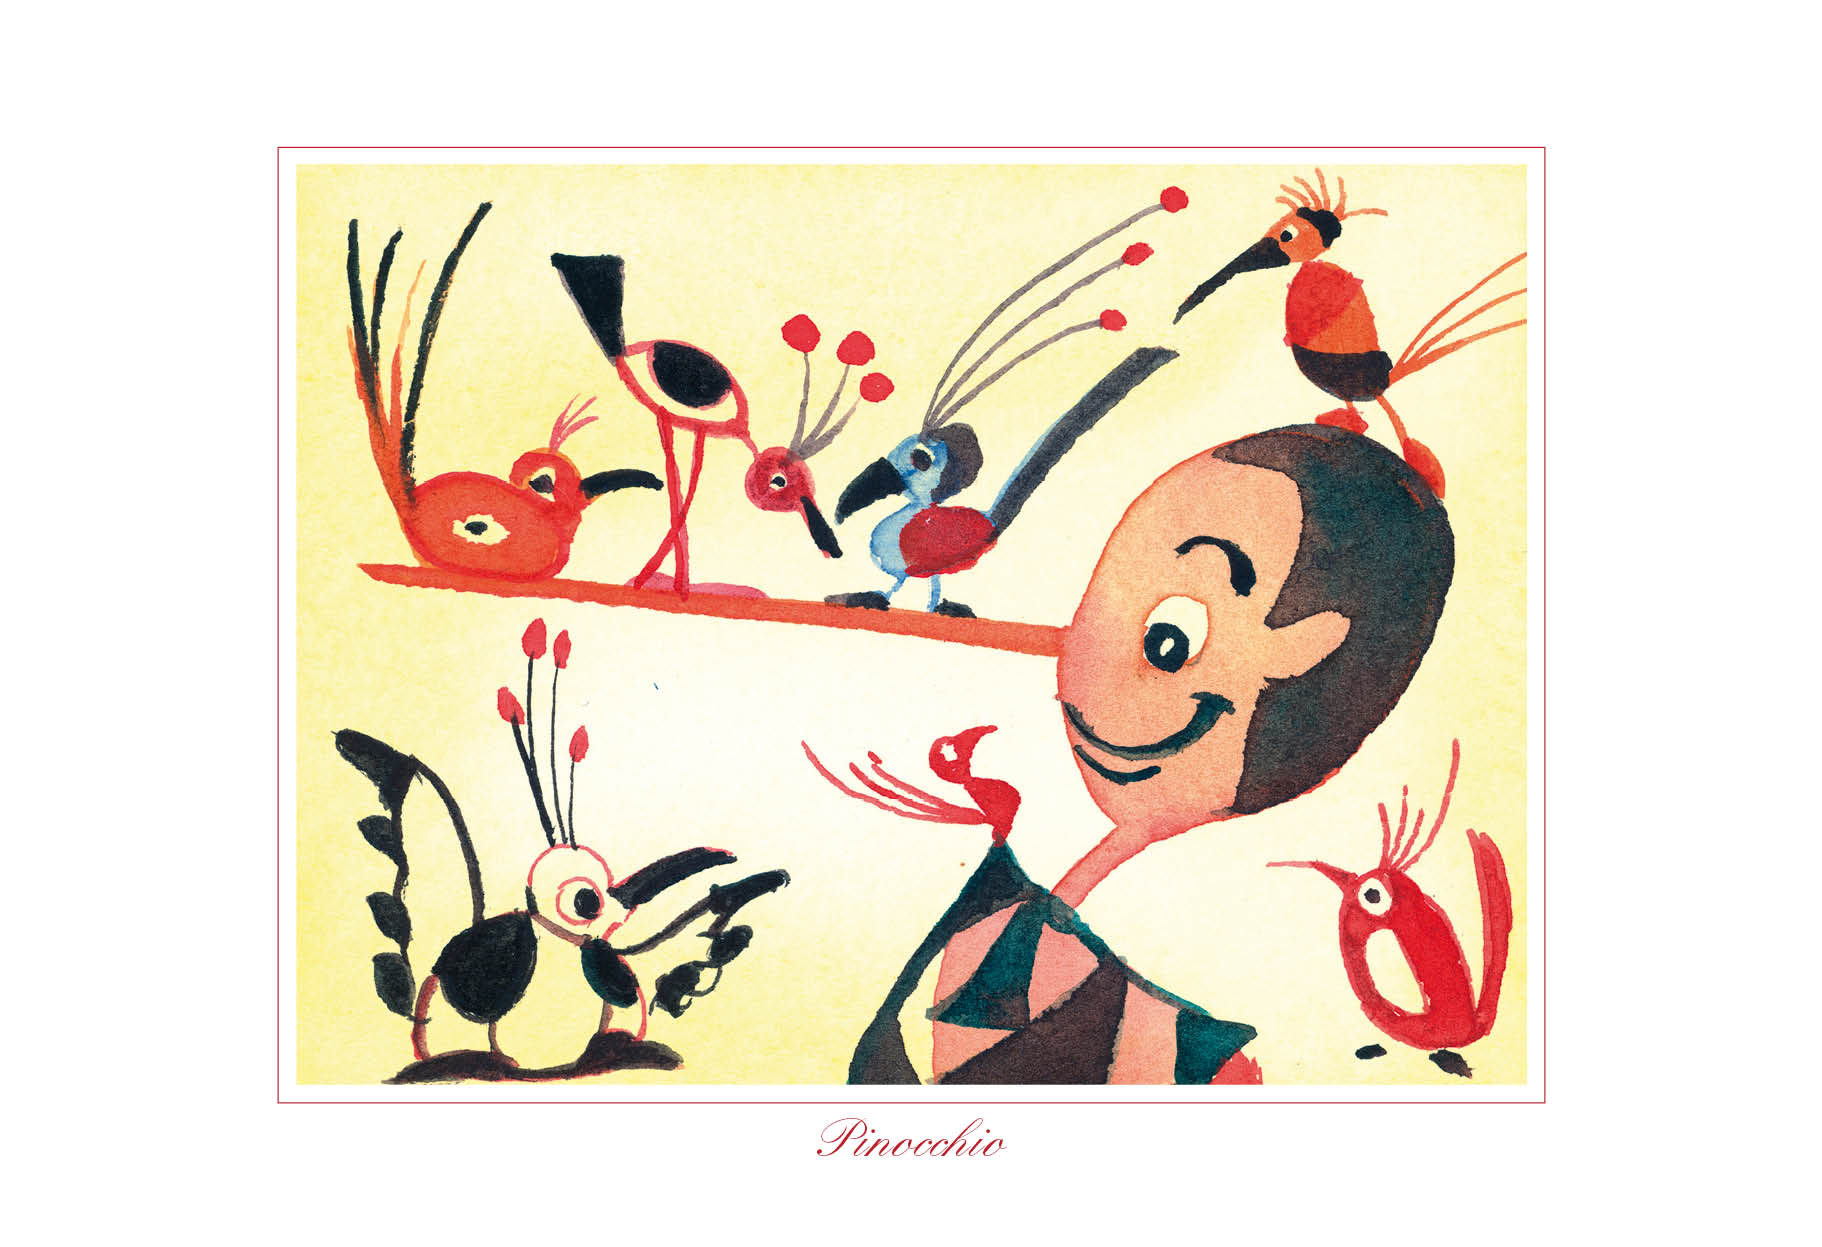 Pinocchio con gli uccellini, Pinocchio and the birds